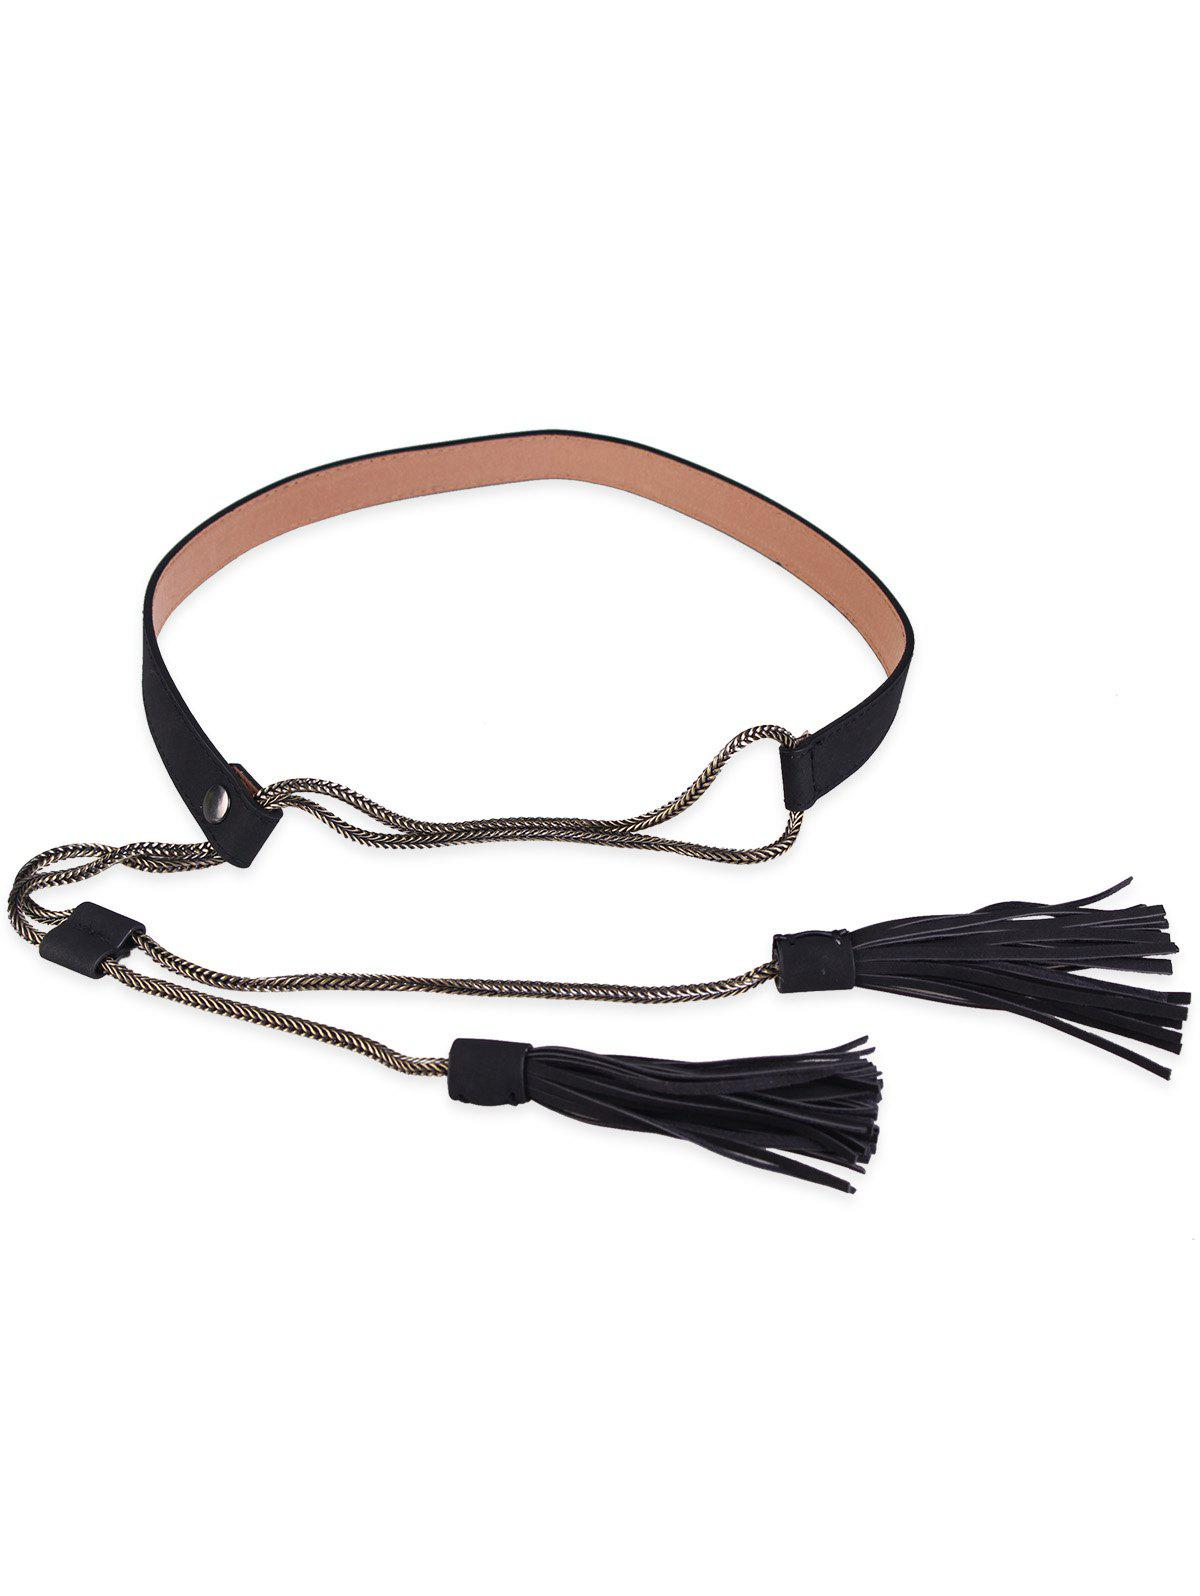 Buy Retro Faux Leather Long Tassel Waist Belt